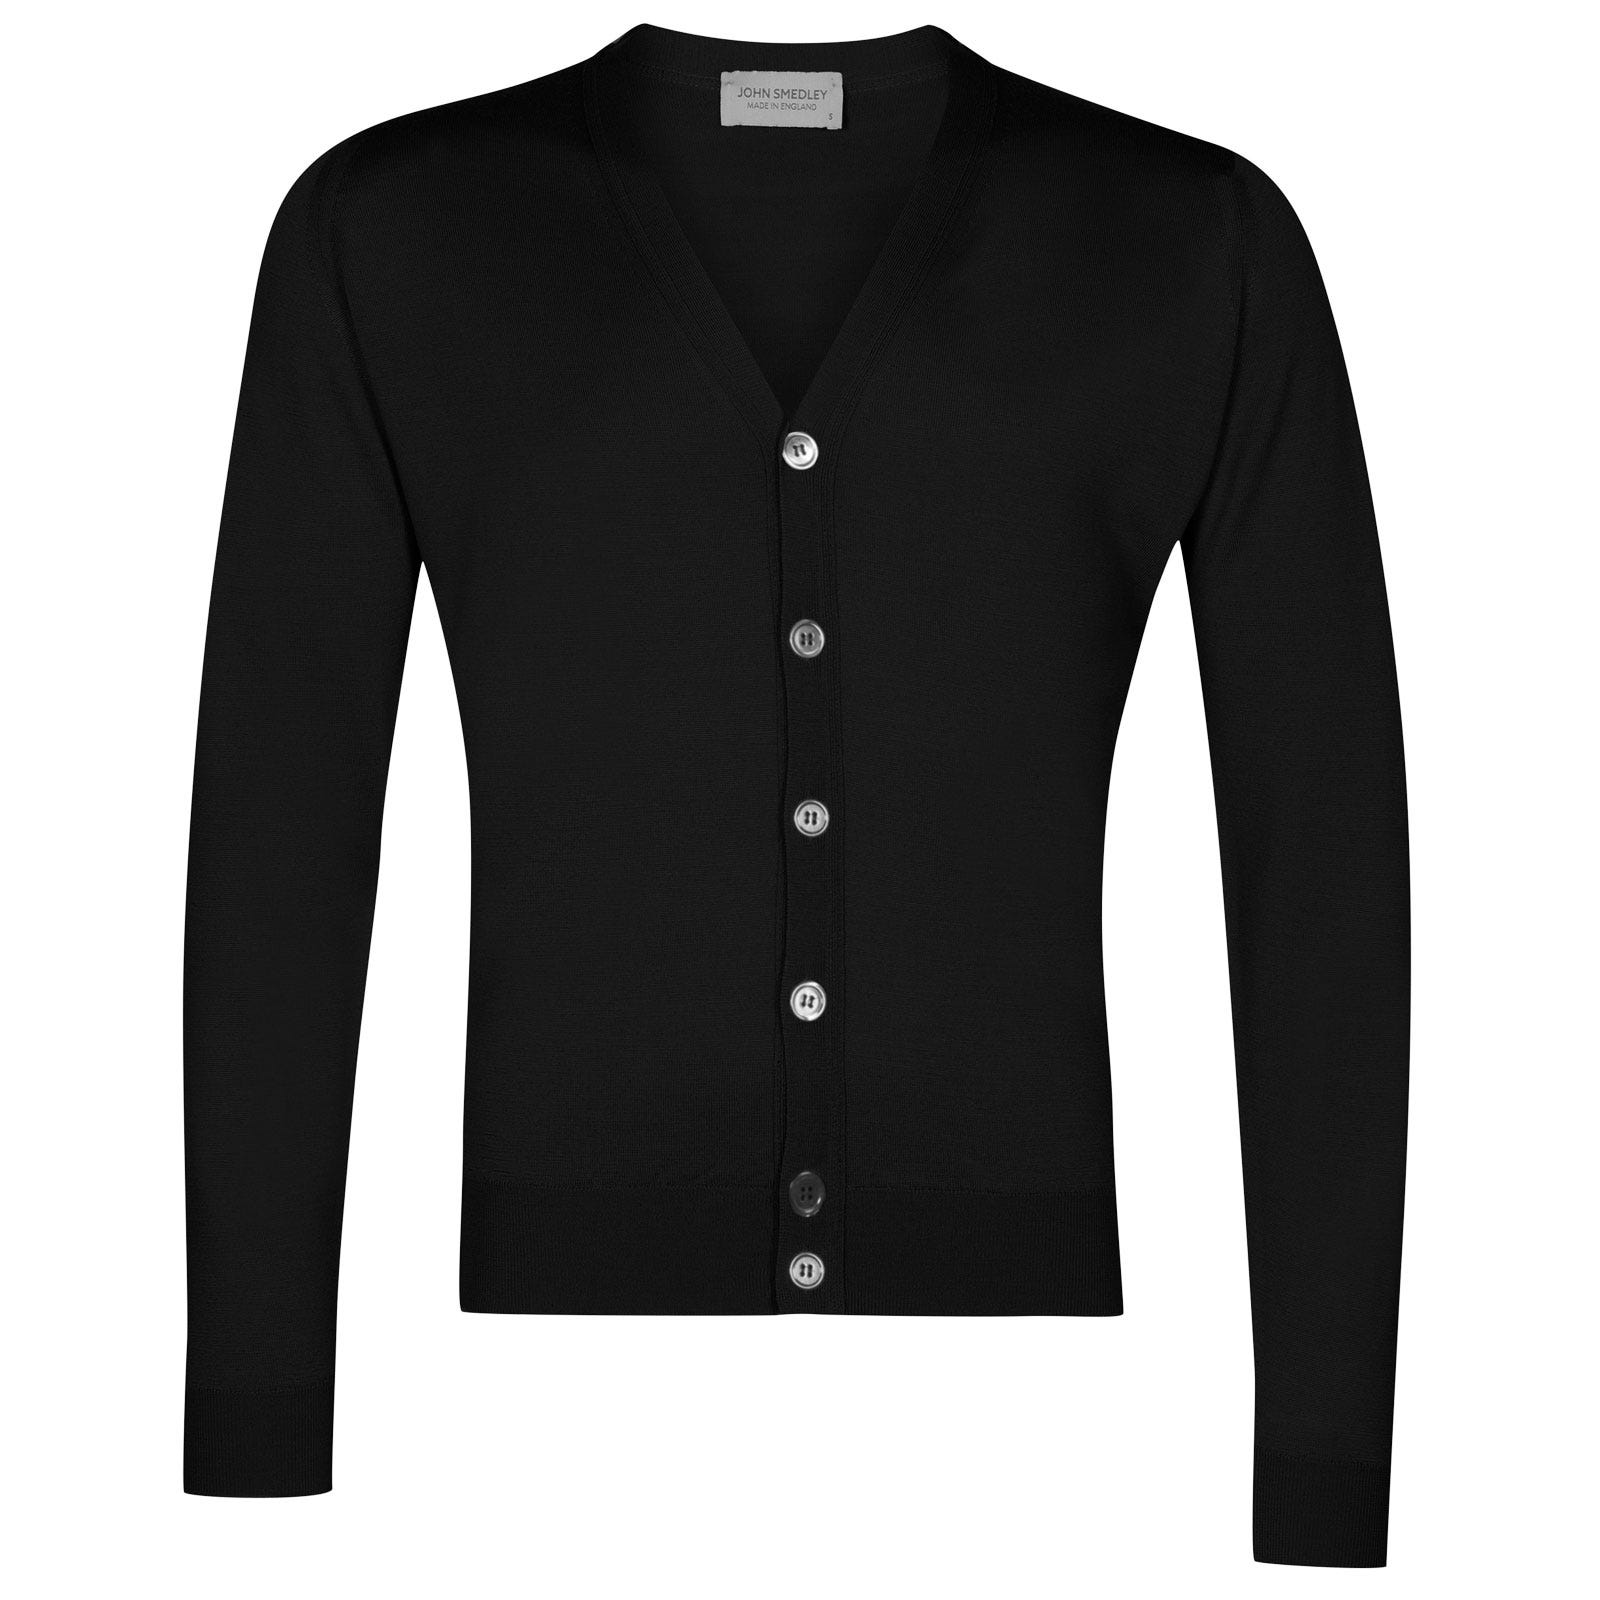 John Smedley naples Merino Wool Cardigan in Black-XXL